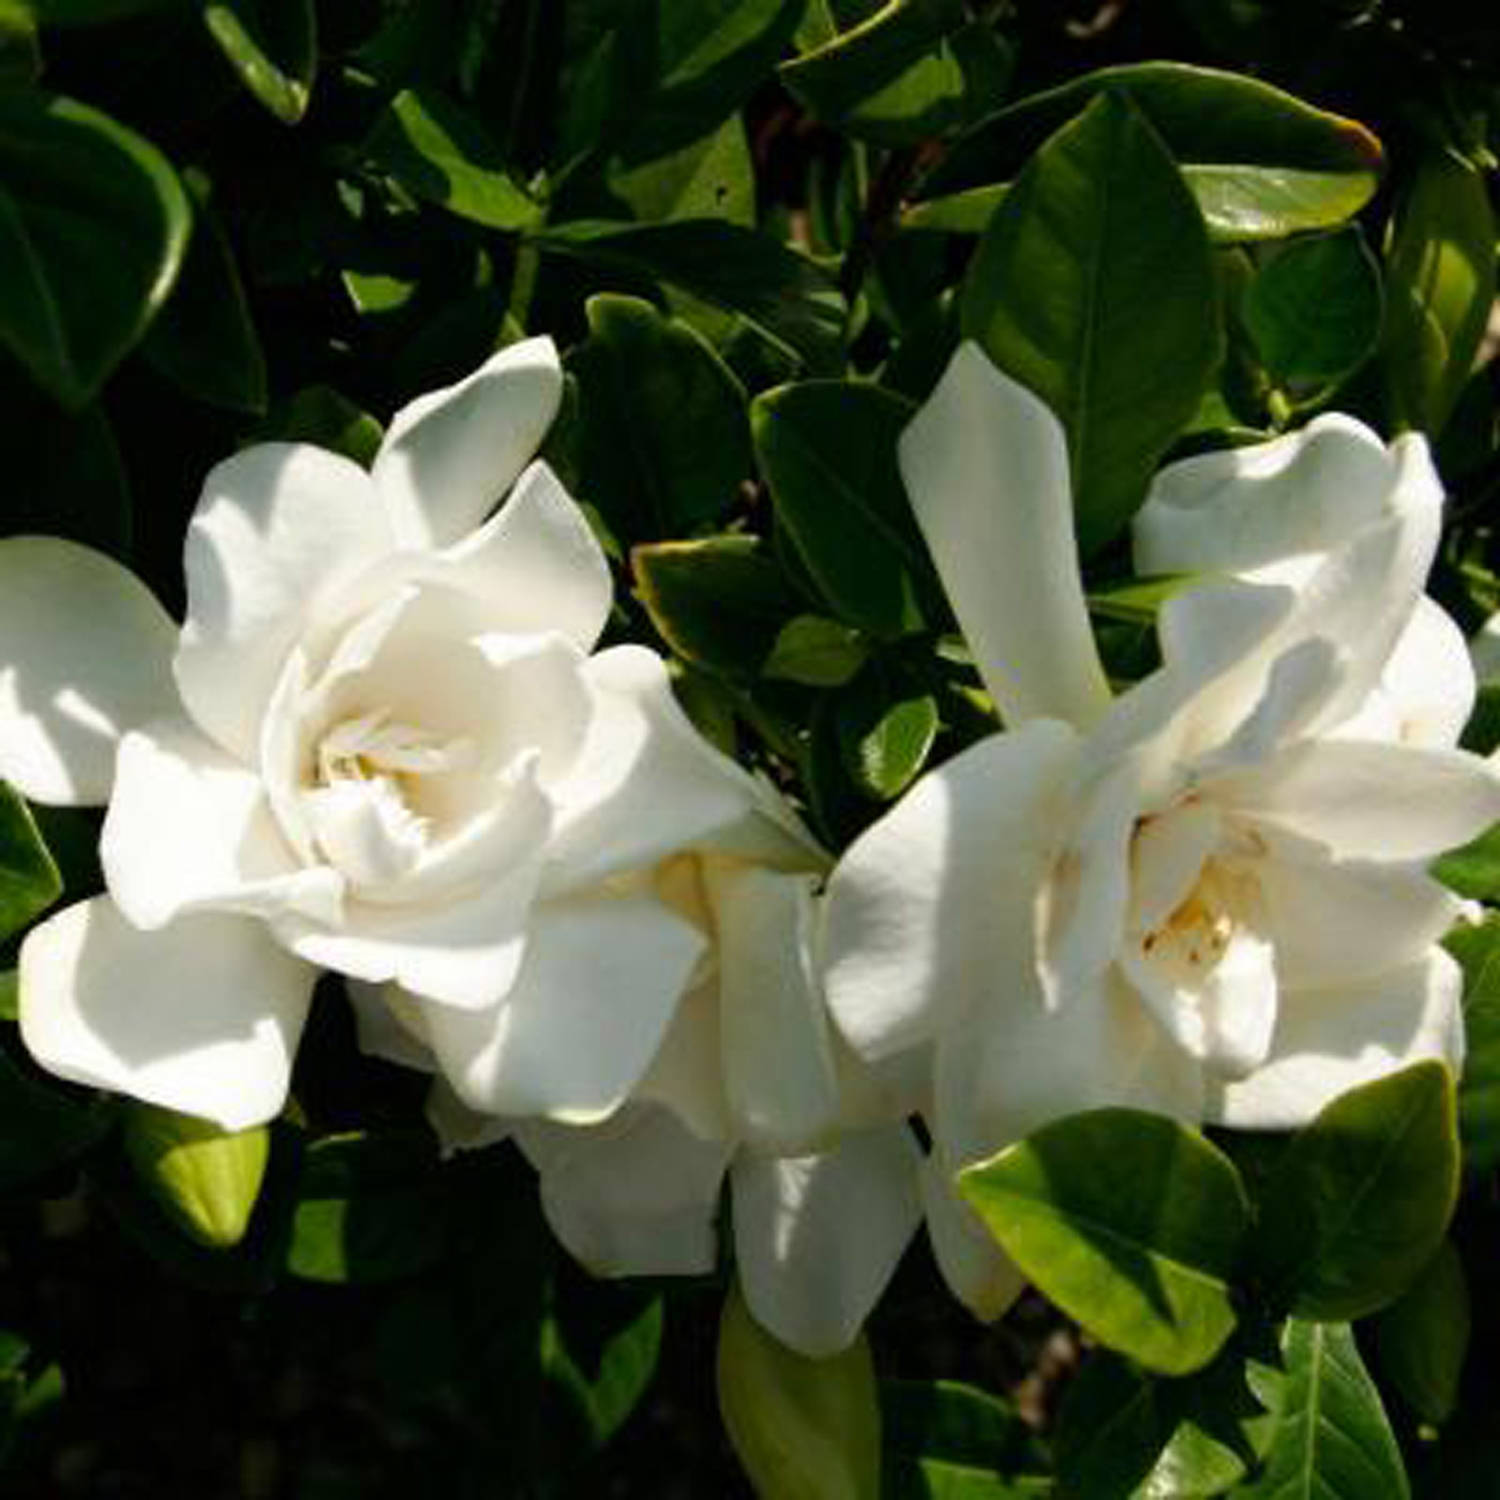 Jubilation Gardenia-White Fragrant Flowers-Evergreen Shrub